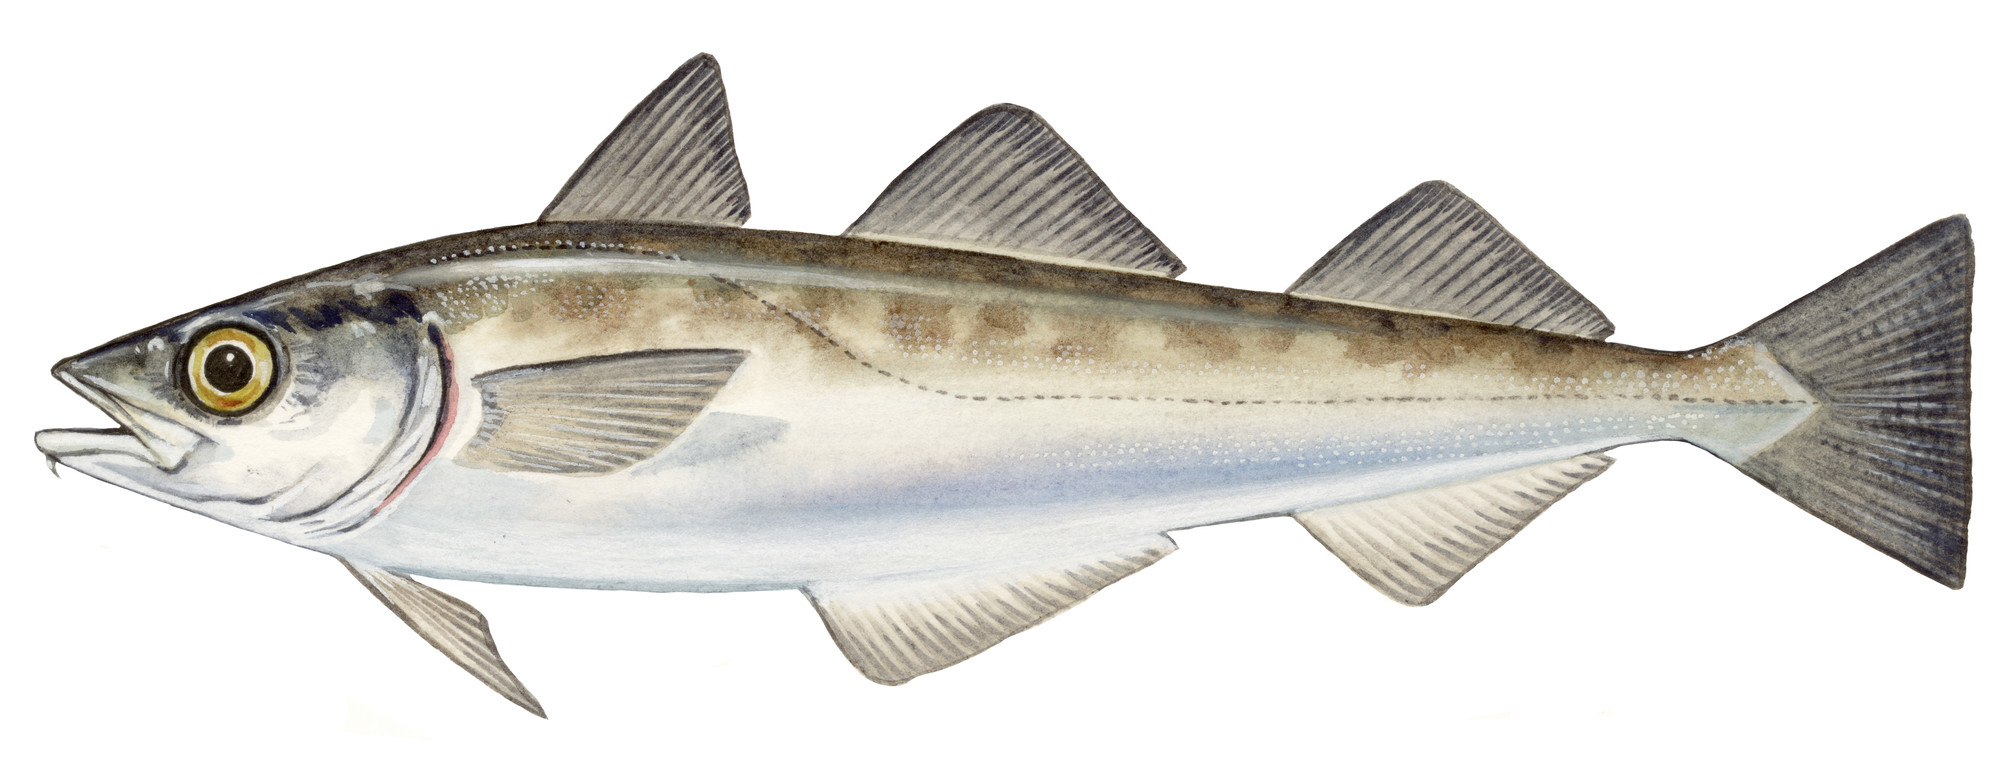 Species image of Alaska Pollock (Theragra chalcogramma) from the Fishing Yearbook